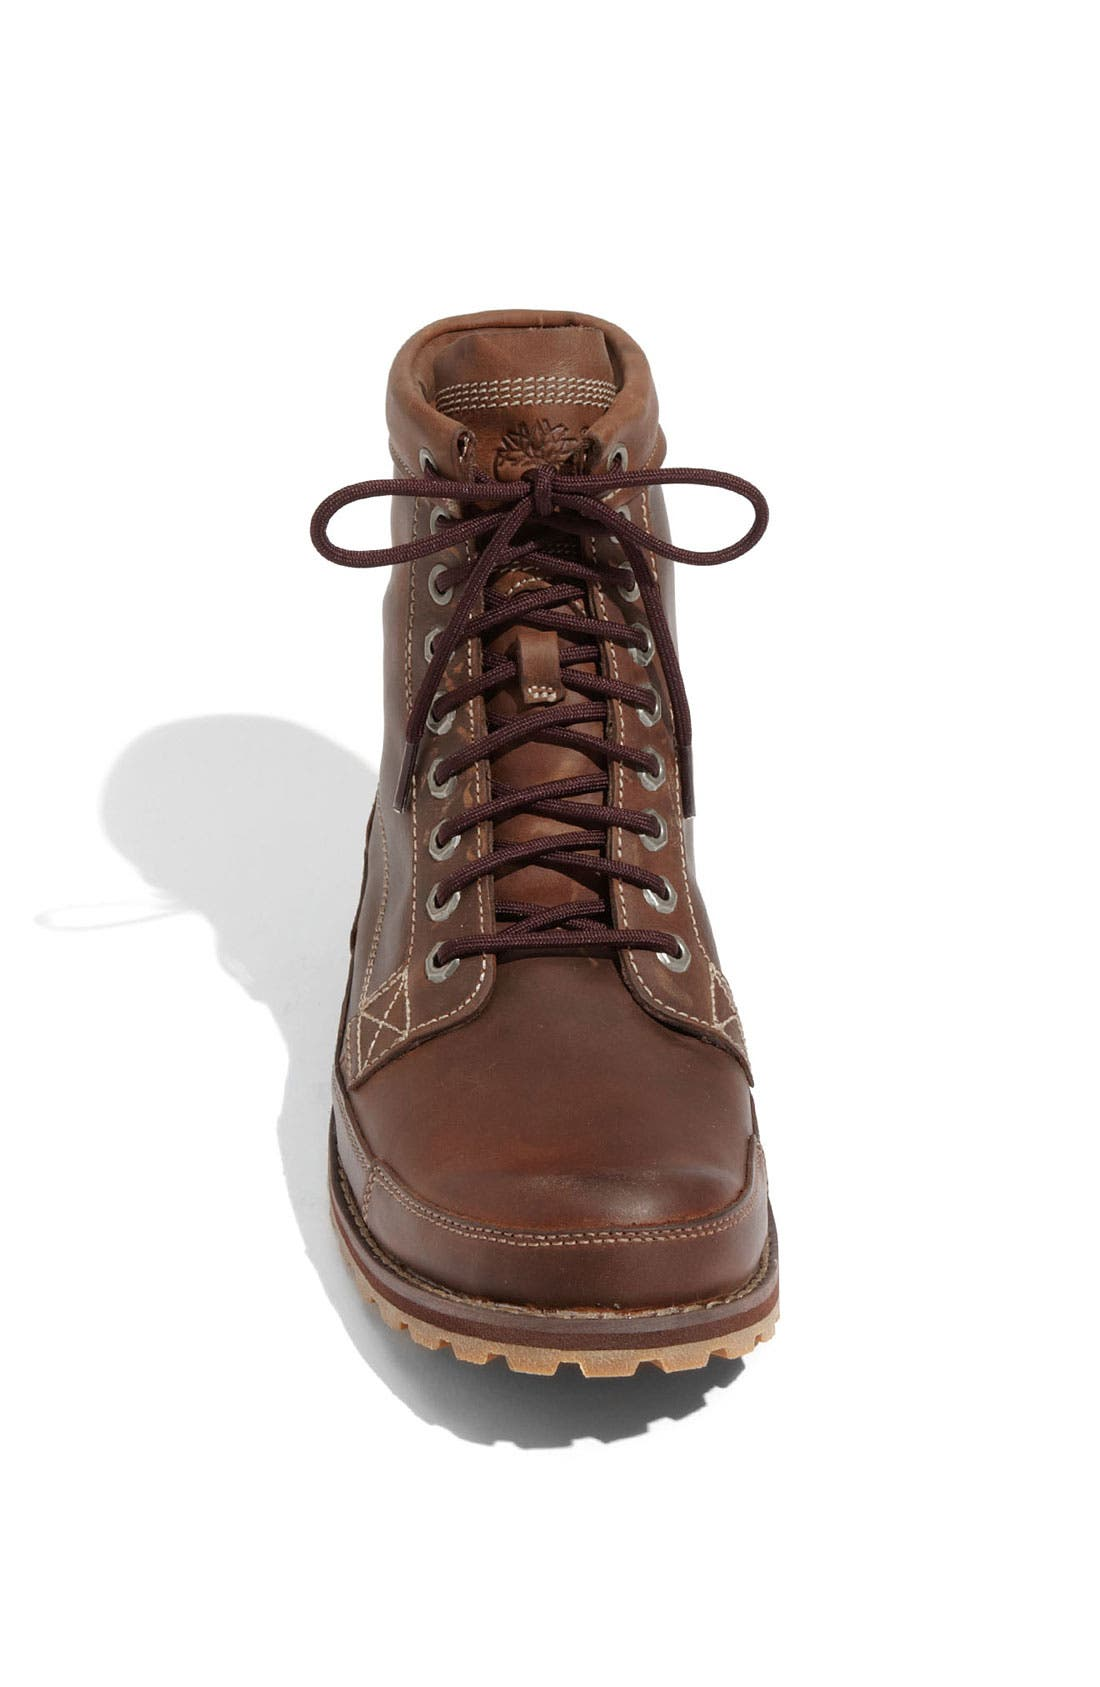 Earthkeepers<sup>®</sup> Lace-Up Boot,                             Alternate thumbnail 3, color,                             Medium Brown Leather